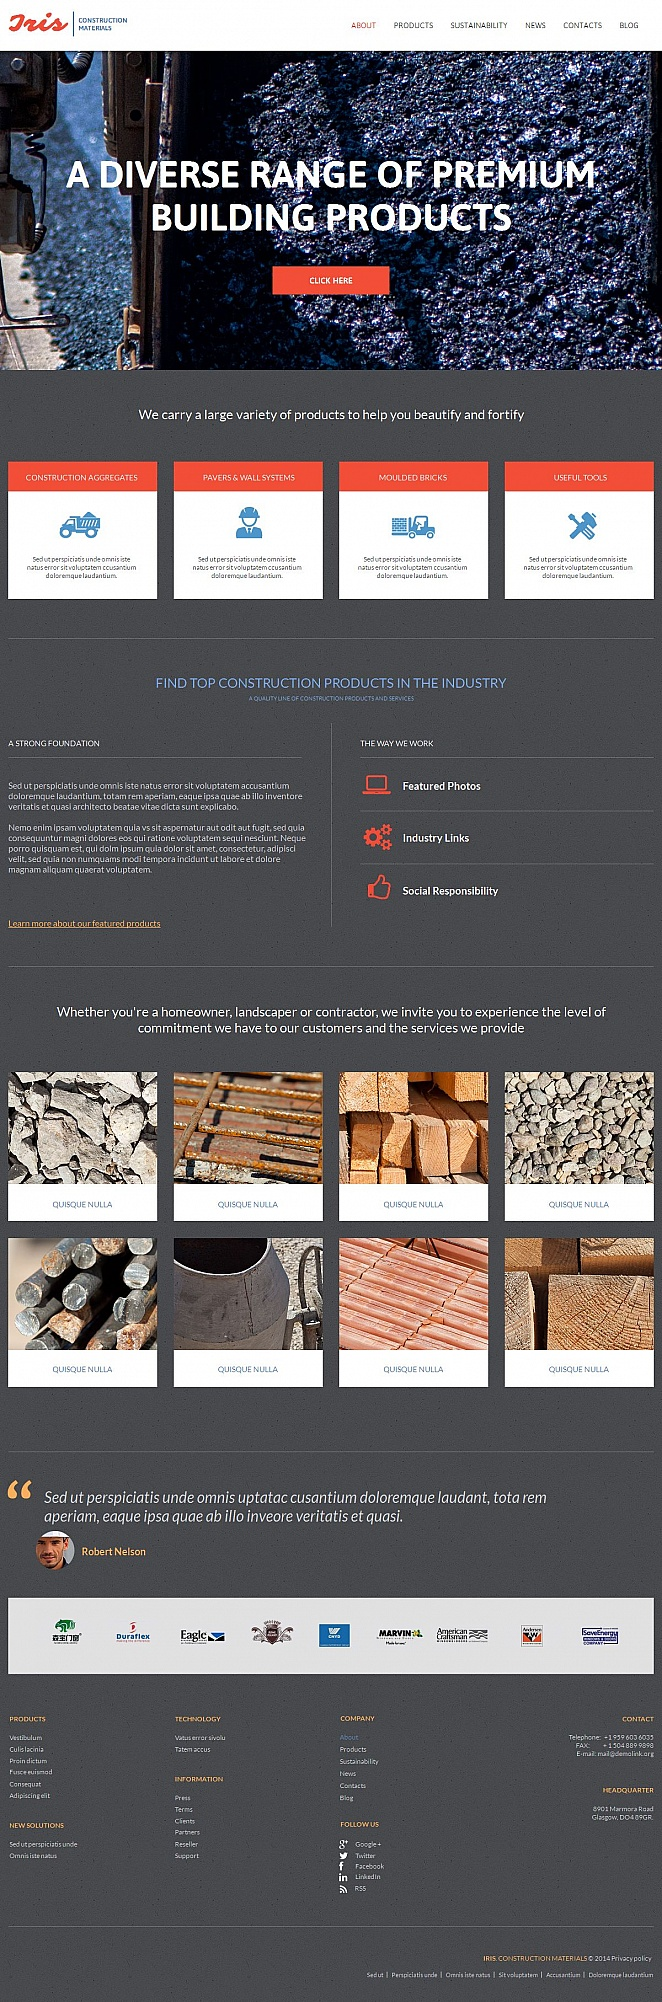 Construction and Materials Website Template - image